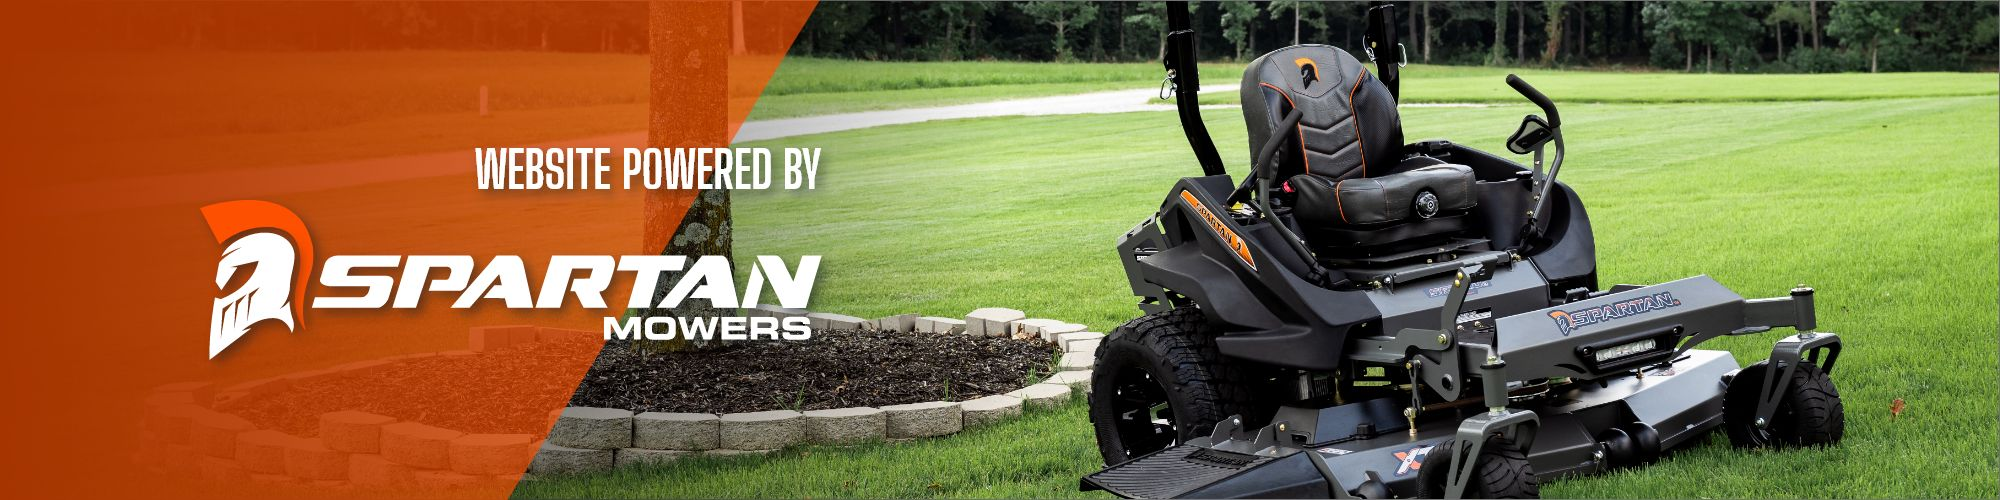 Website Powered By Spartan Mowers